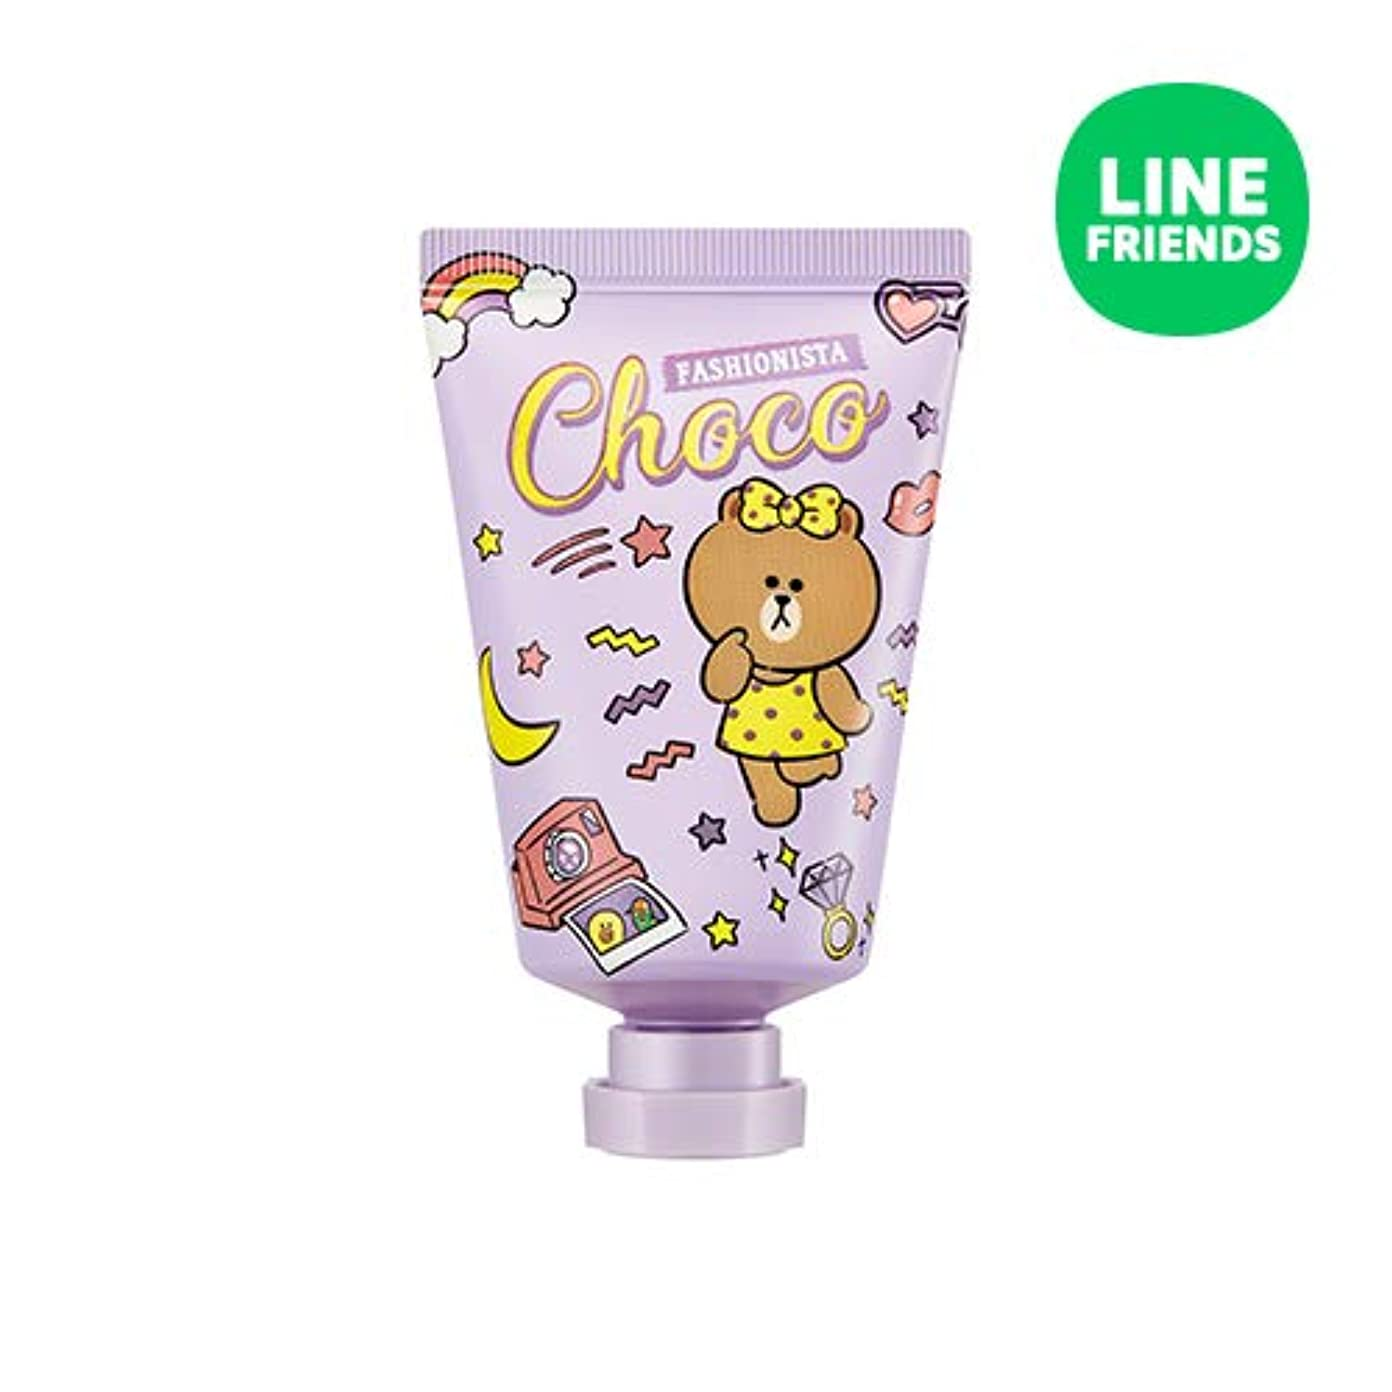 ミシャ(ラインフレンズ)ラブシークレットハンドクリーム 30ml MISSHA [Line Friends Edition] Love Secret Hand Cream - Choco # Pitch Cocktail...